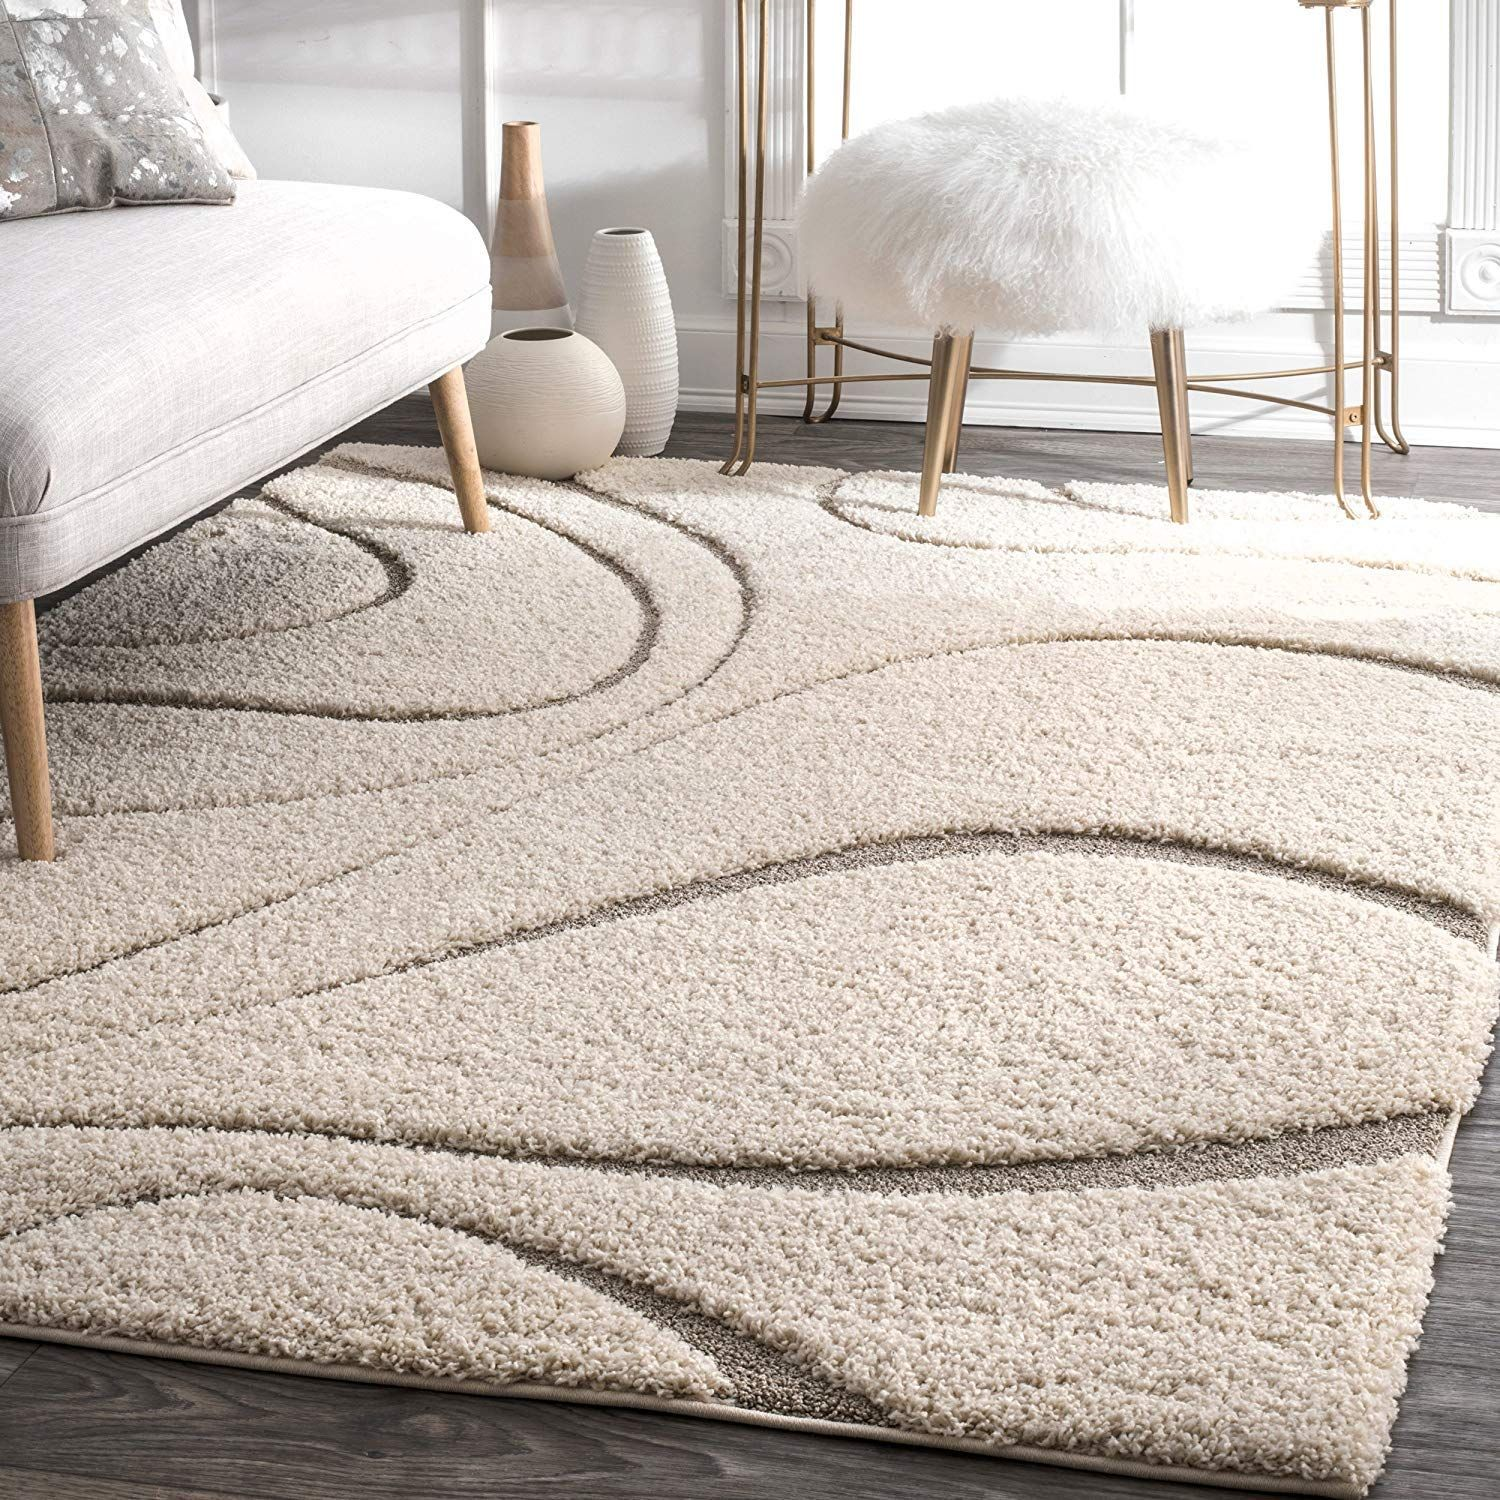 Carpet Design Contemporary Home Decor Area Rugs Contemporary House